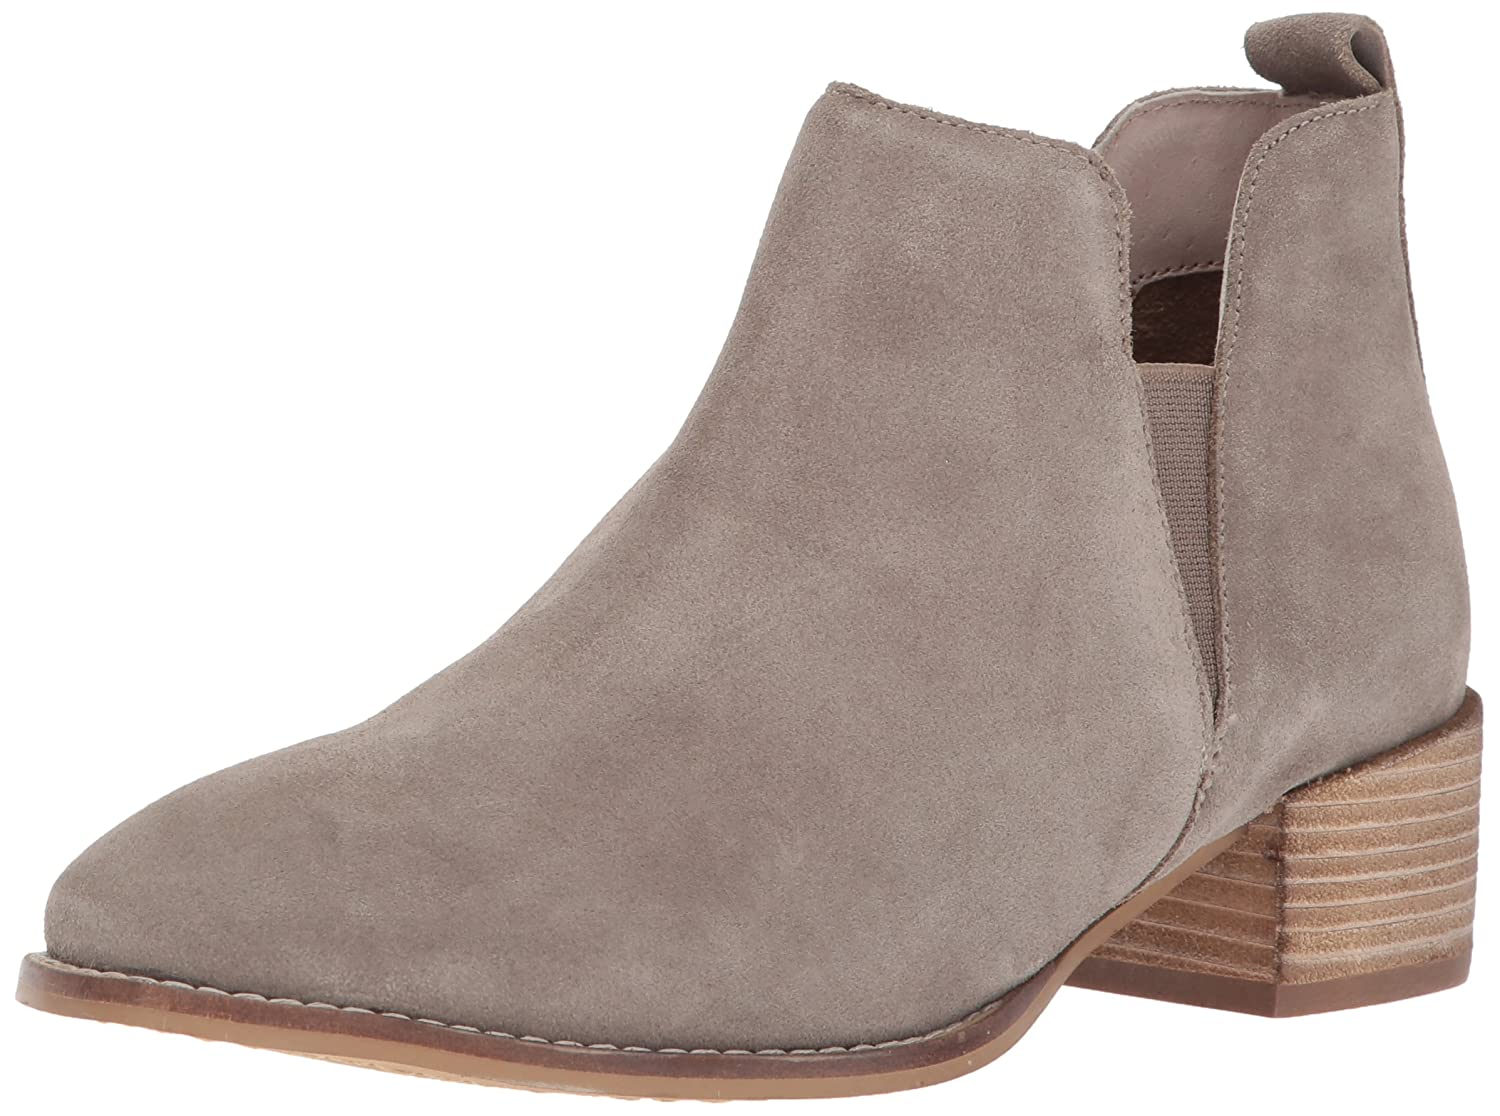 Seychelles Women's Offstage Ankle Bootie B06XDMJ26H 11 B(M) US|Taupe